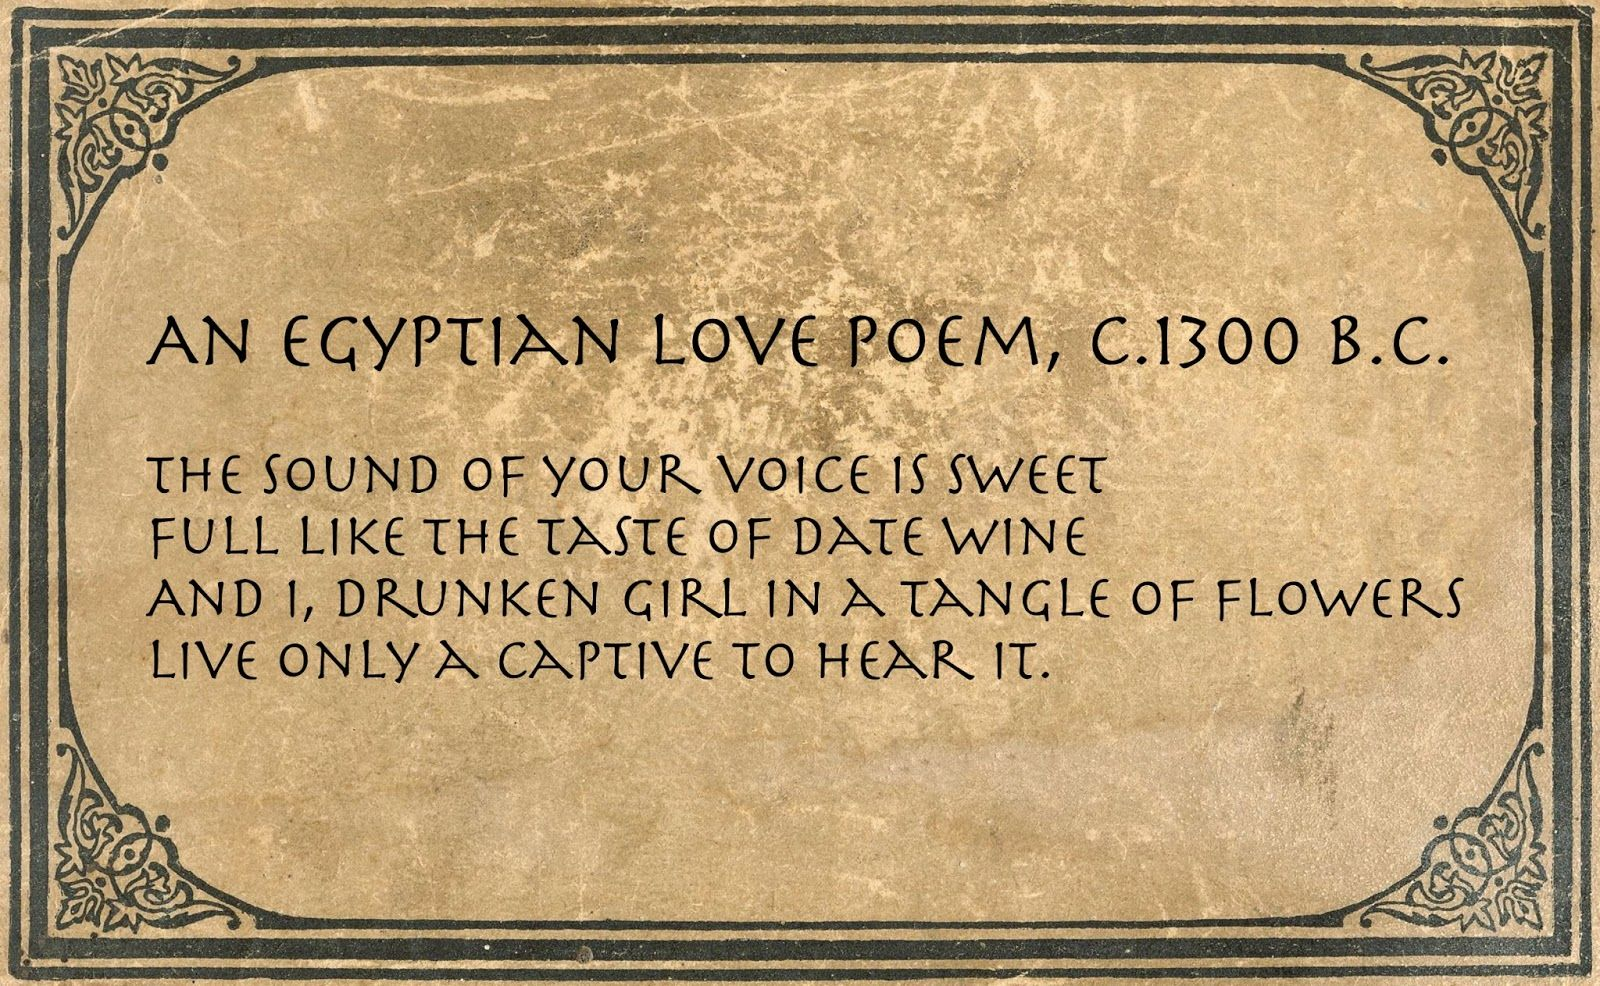 Poems, Quotes and Prose: An Egyptian Love Poem, c.1300 B.C.   Neat ...